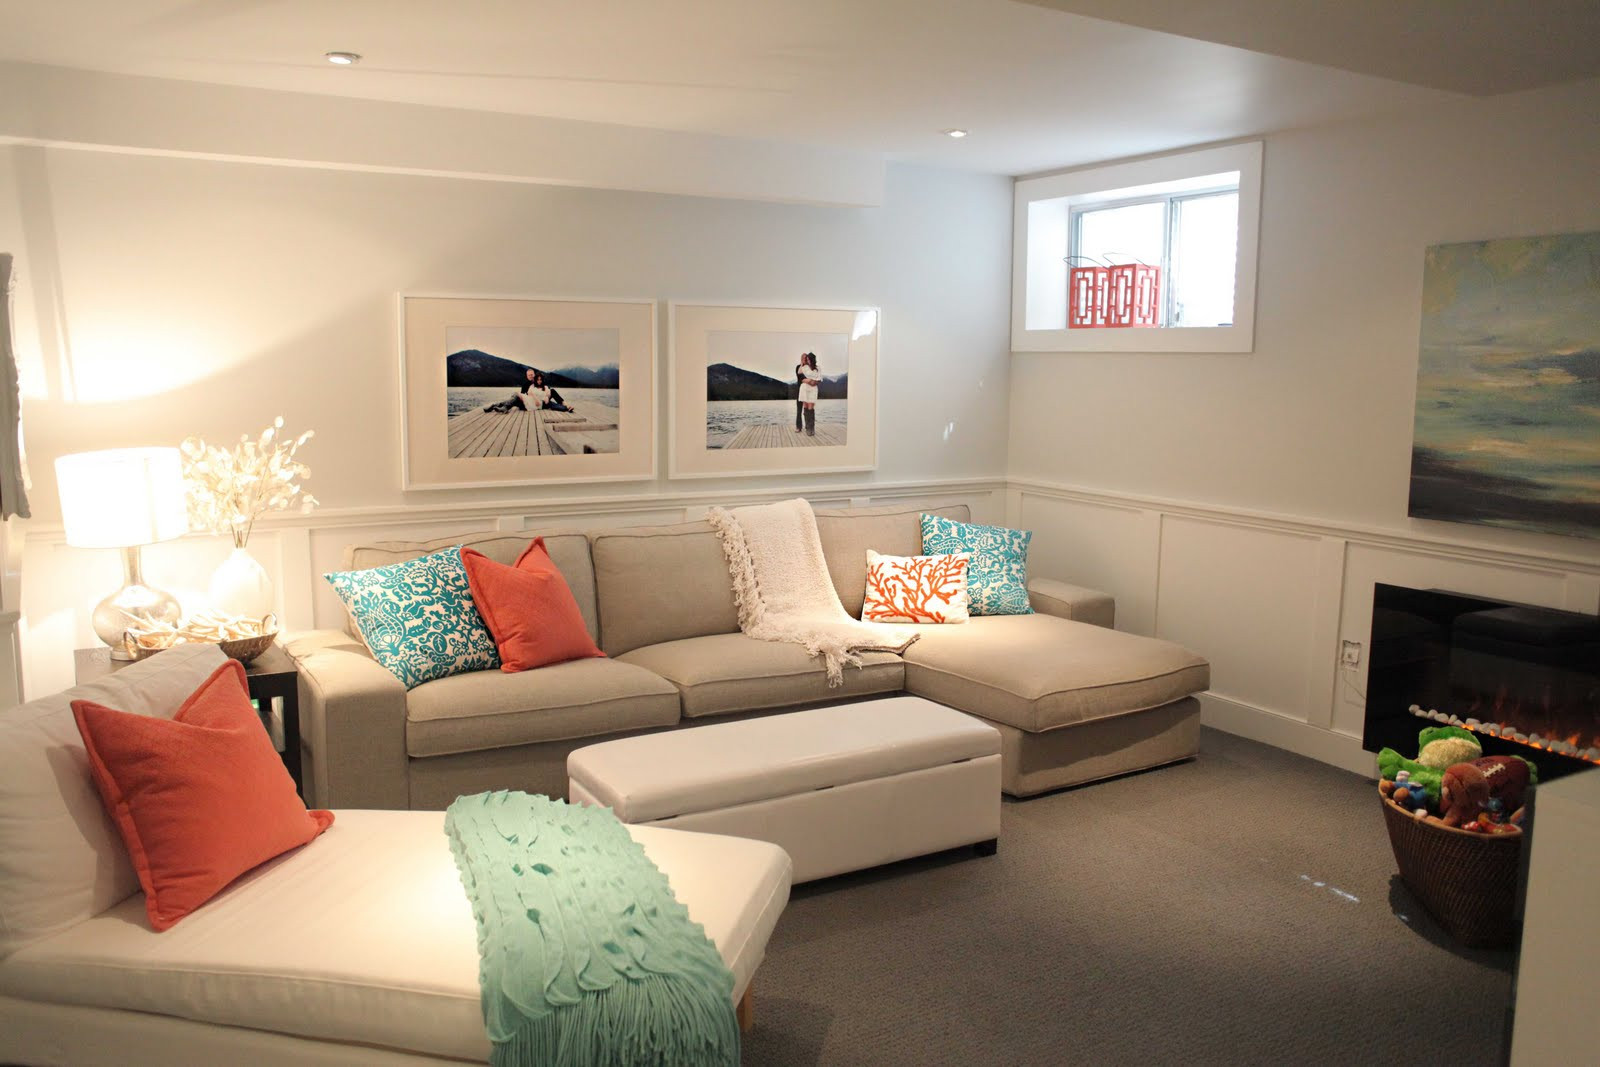 Best ideas about Basement Family Room Ideas . Save or Pin Basement Remodeling Ideas Decorating Basement Now.